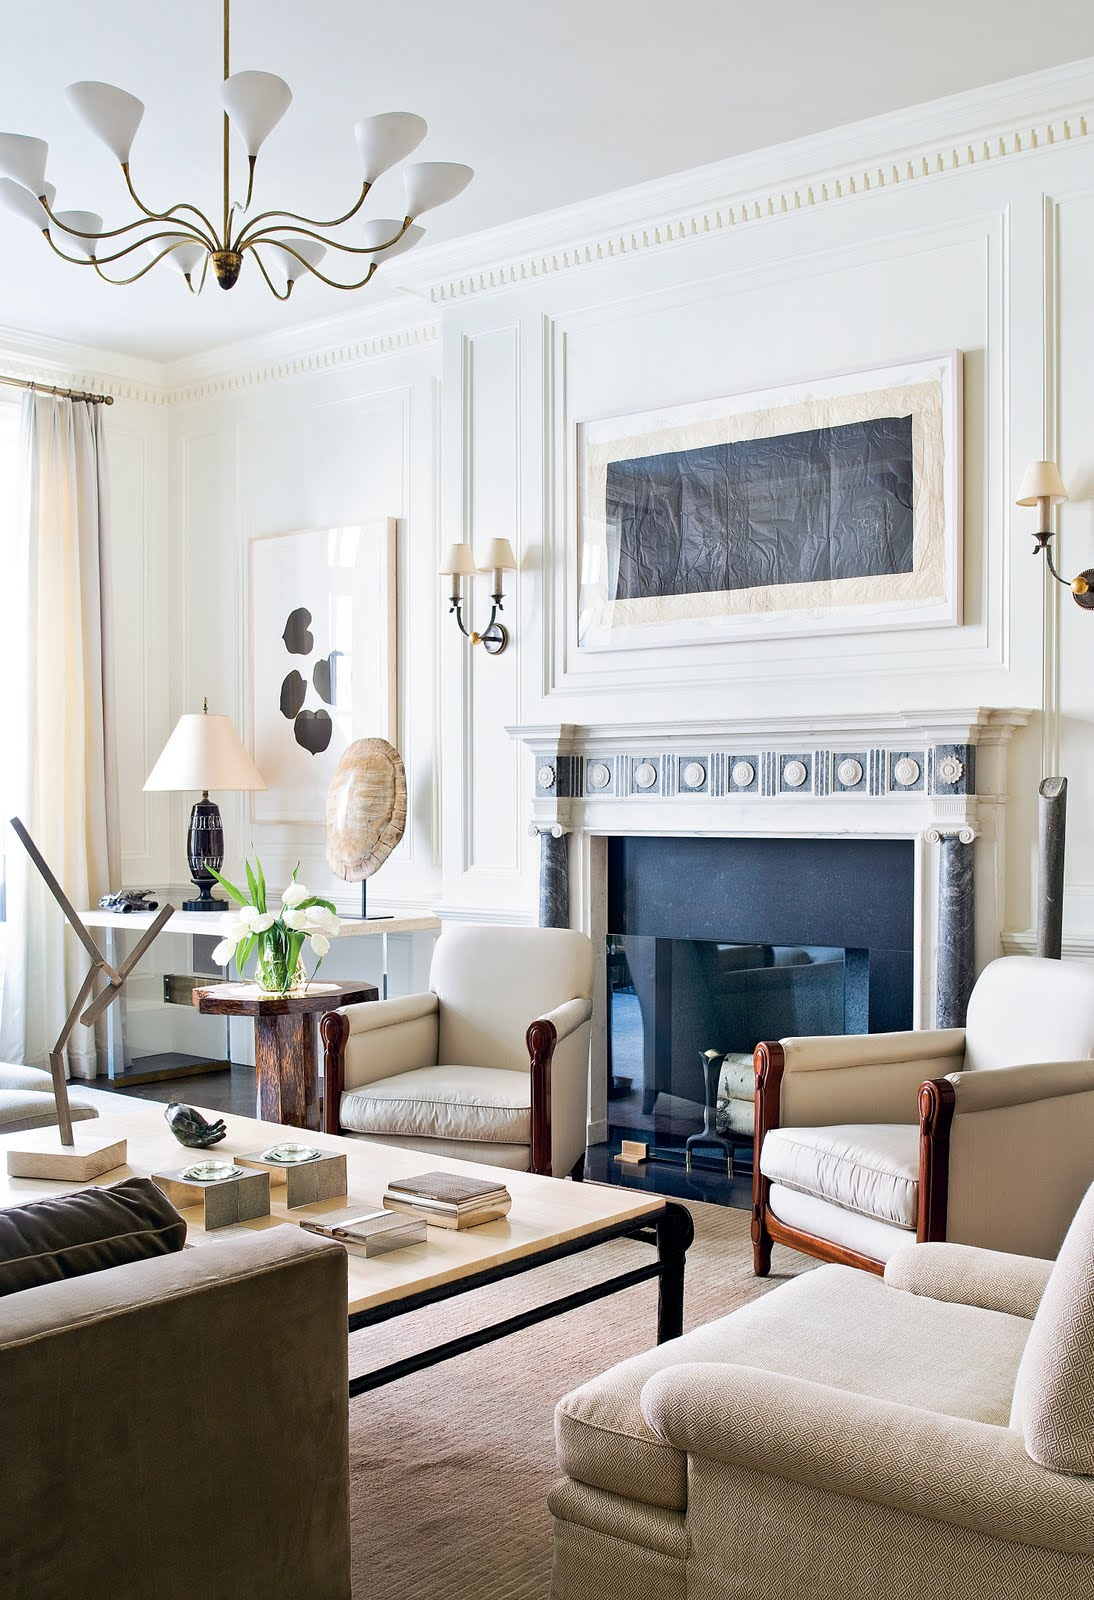 Townhouse Living Room Design: THE HOMES ARCHITECT PETER